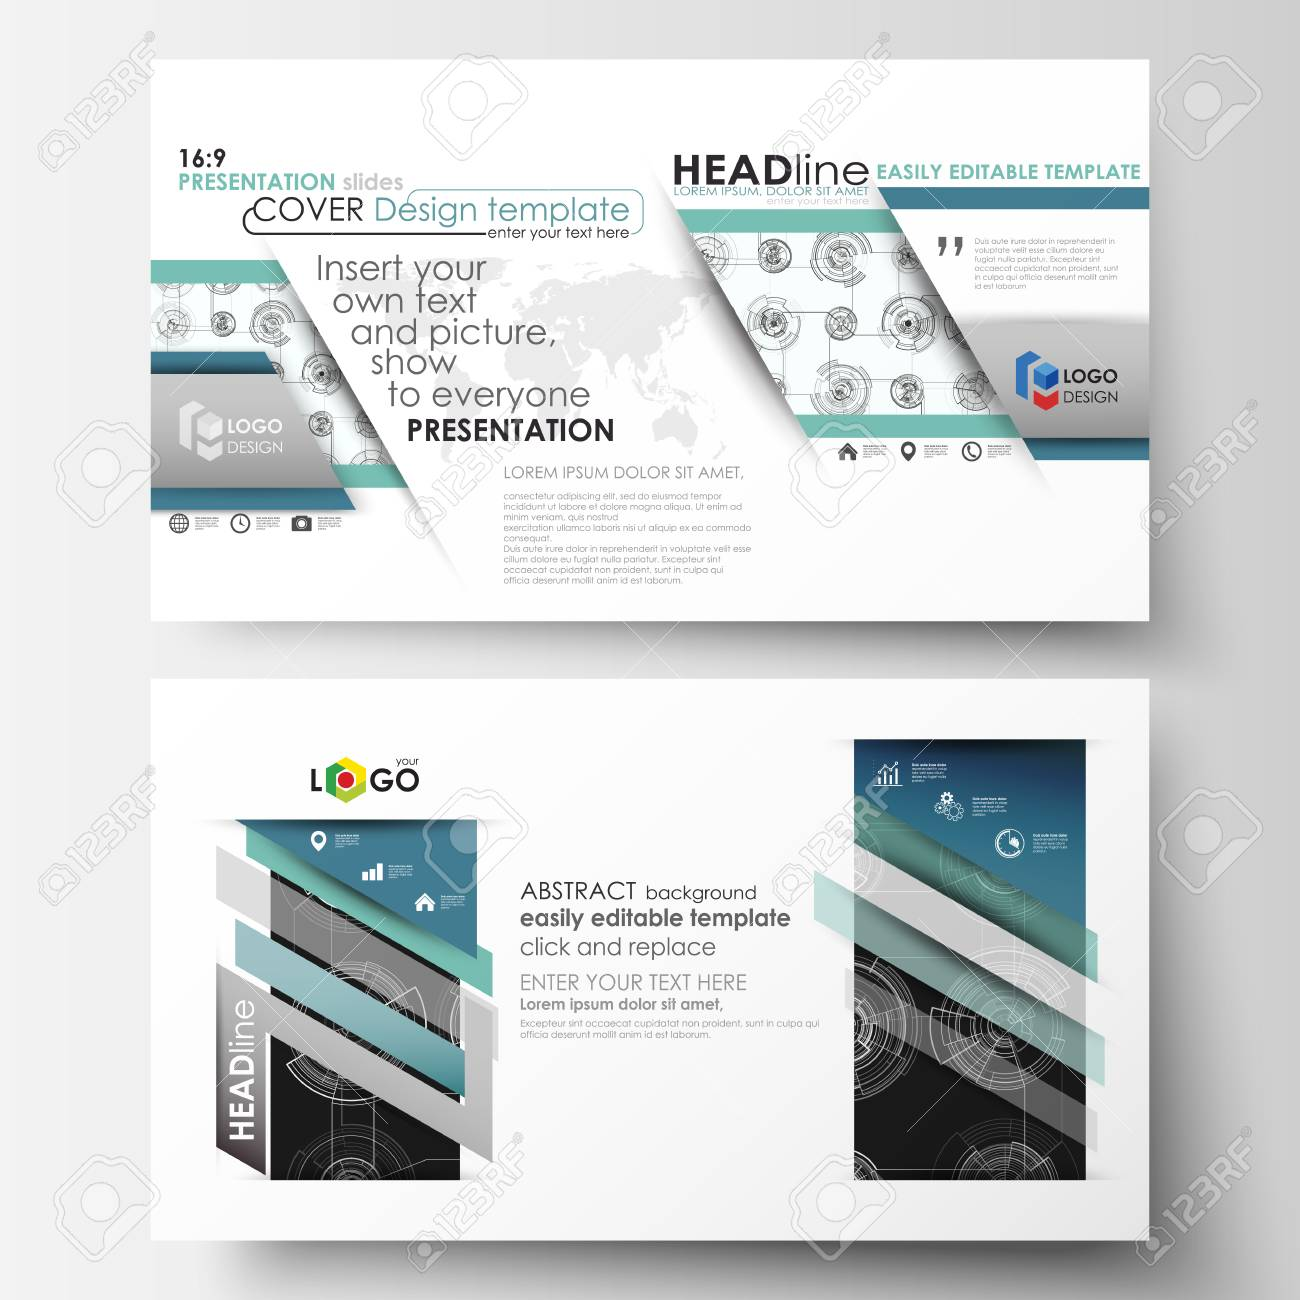 Business Templates In HD Format For Presentation Slides. Easy ...